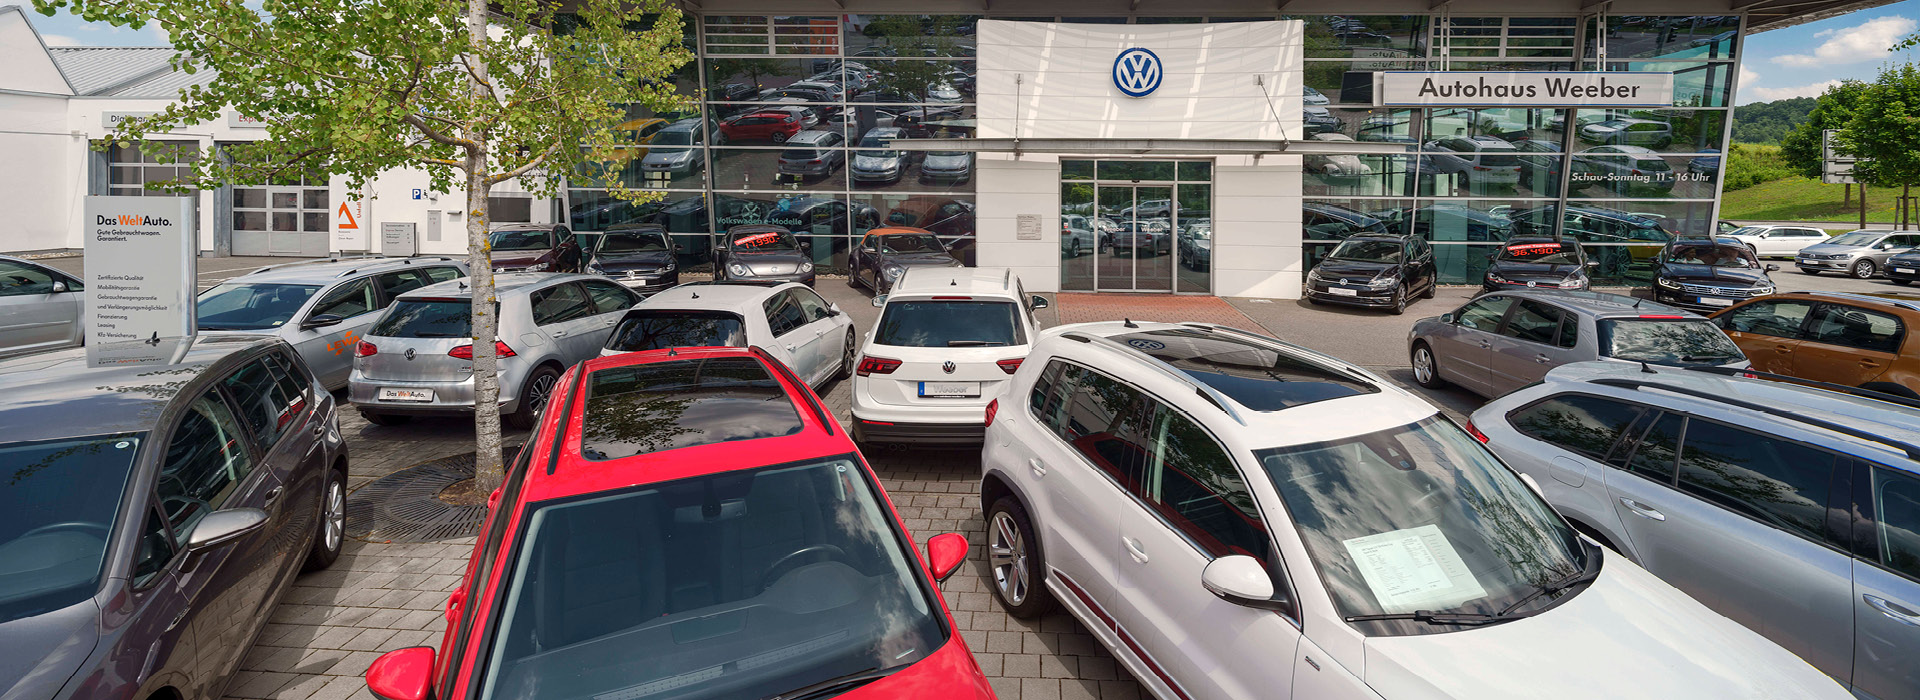 Autohaus Weeber in Leonberg